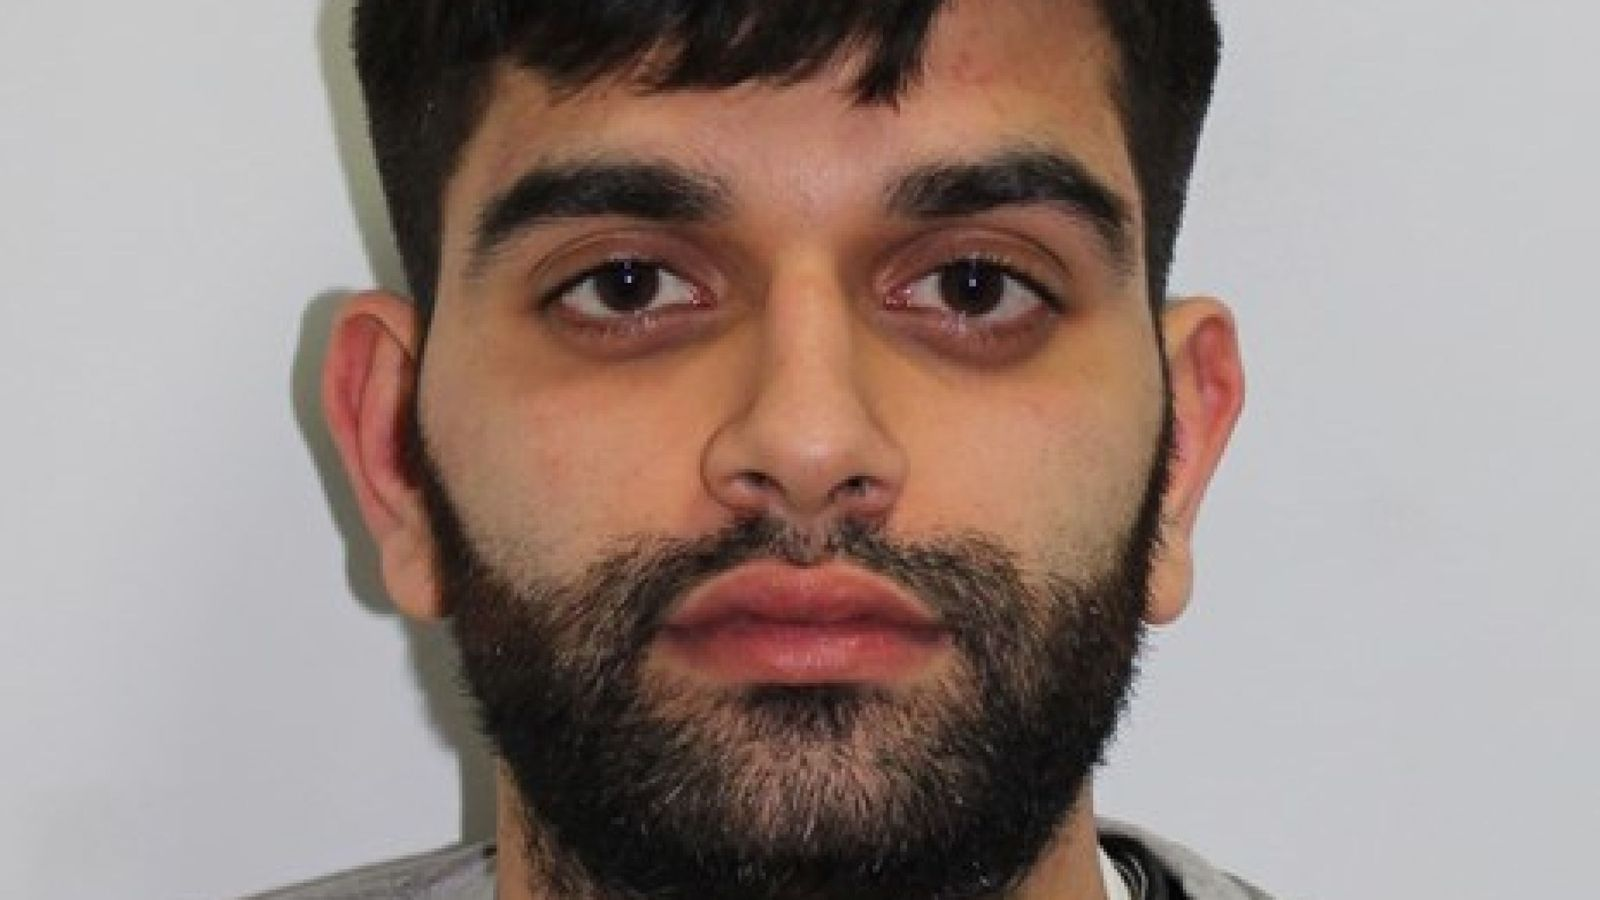 Man who made millions blackmailing porn users jailed